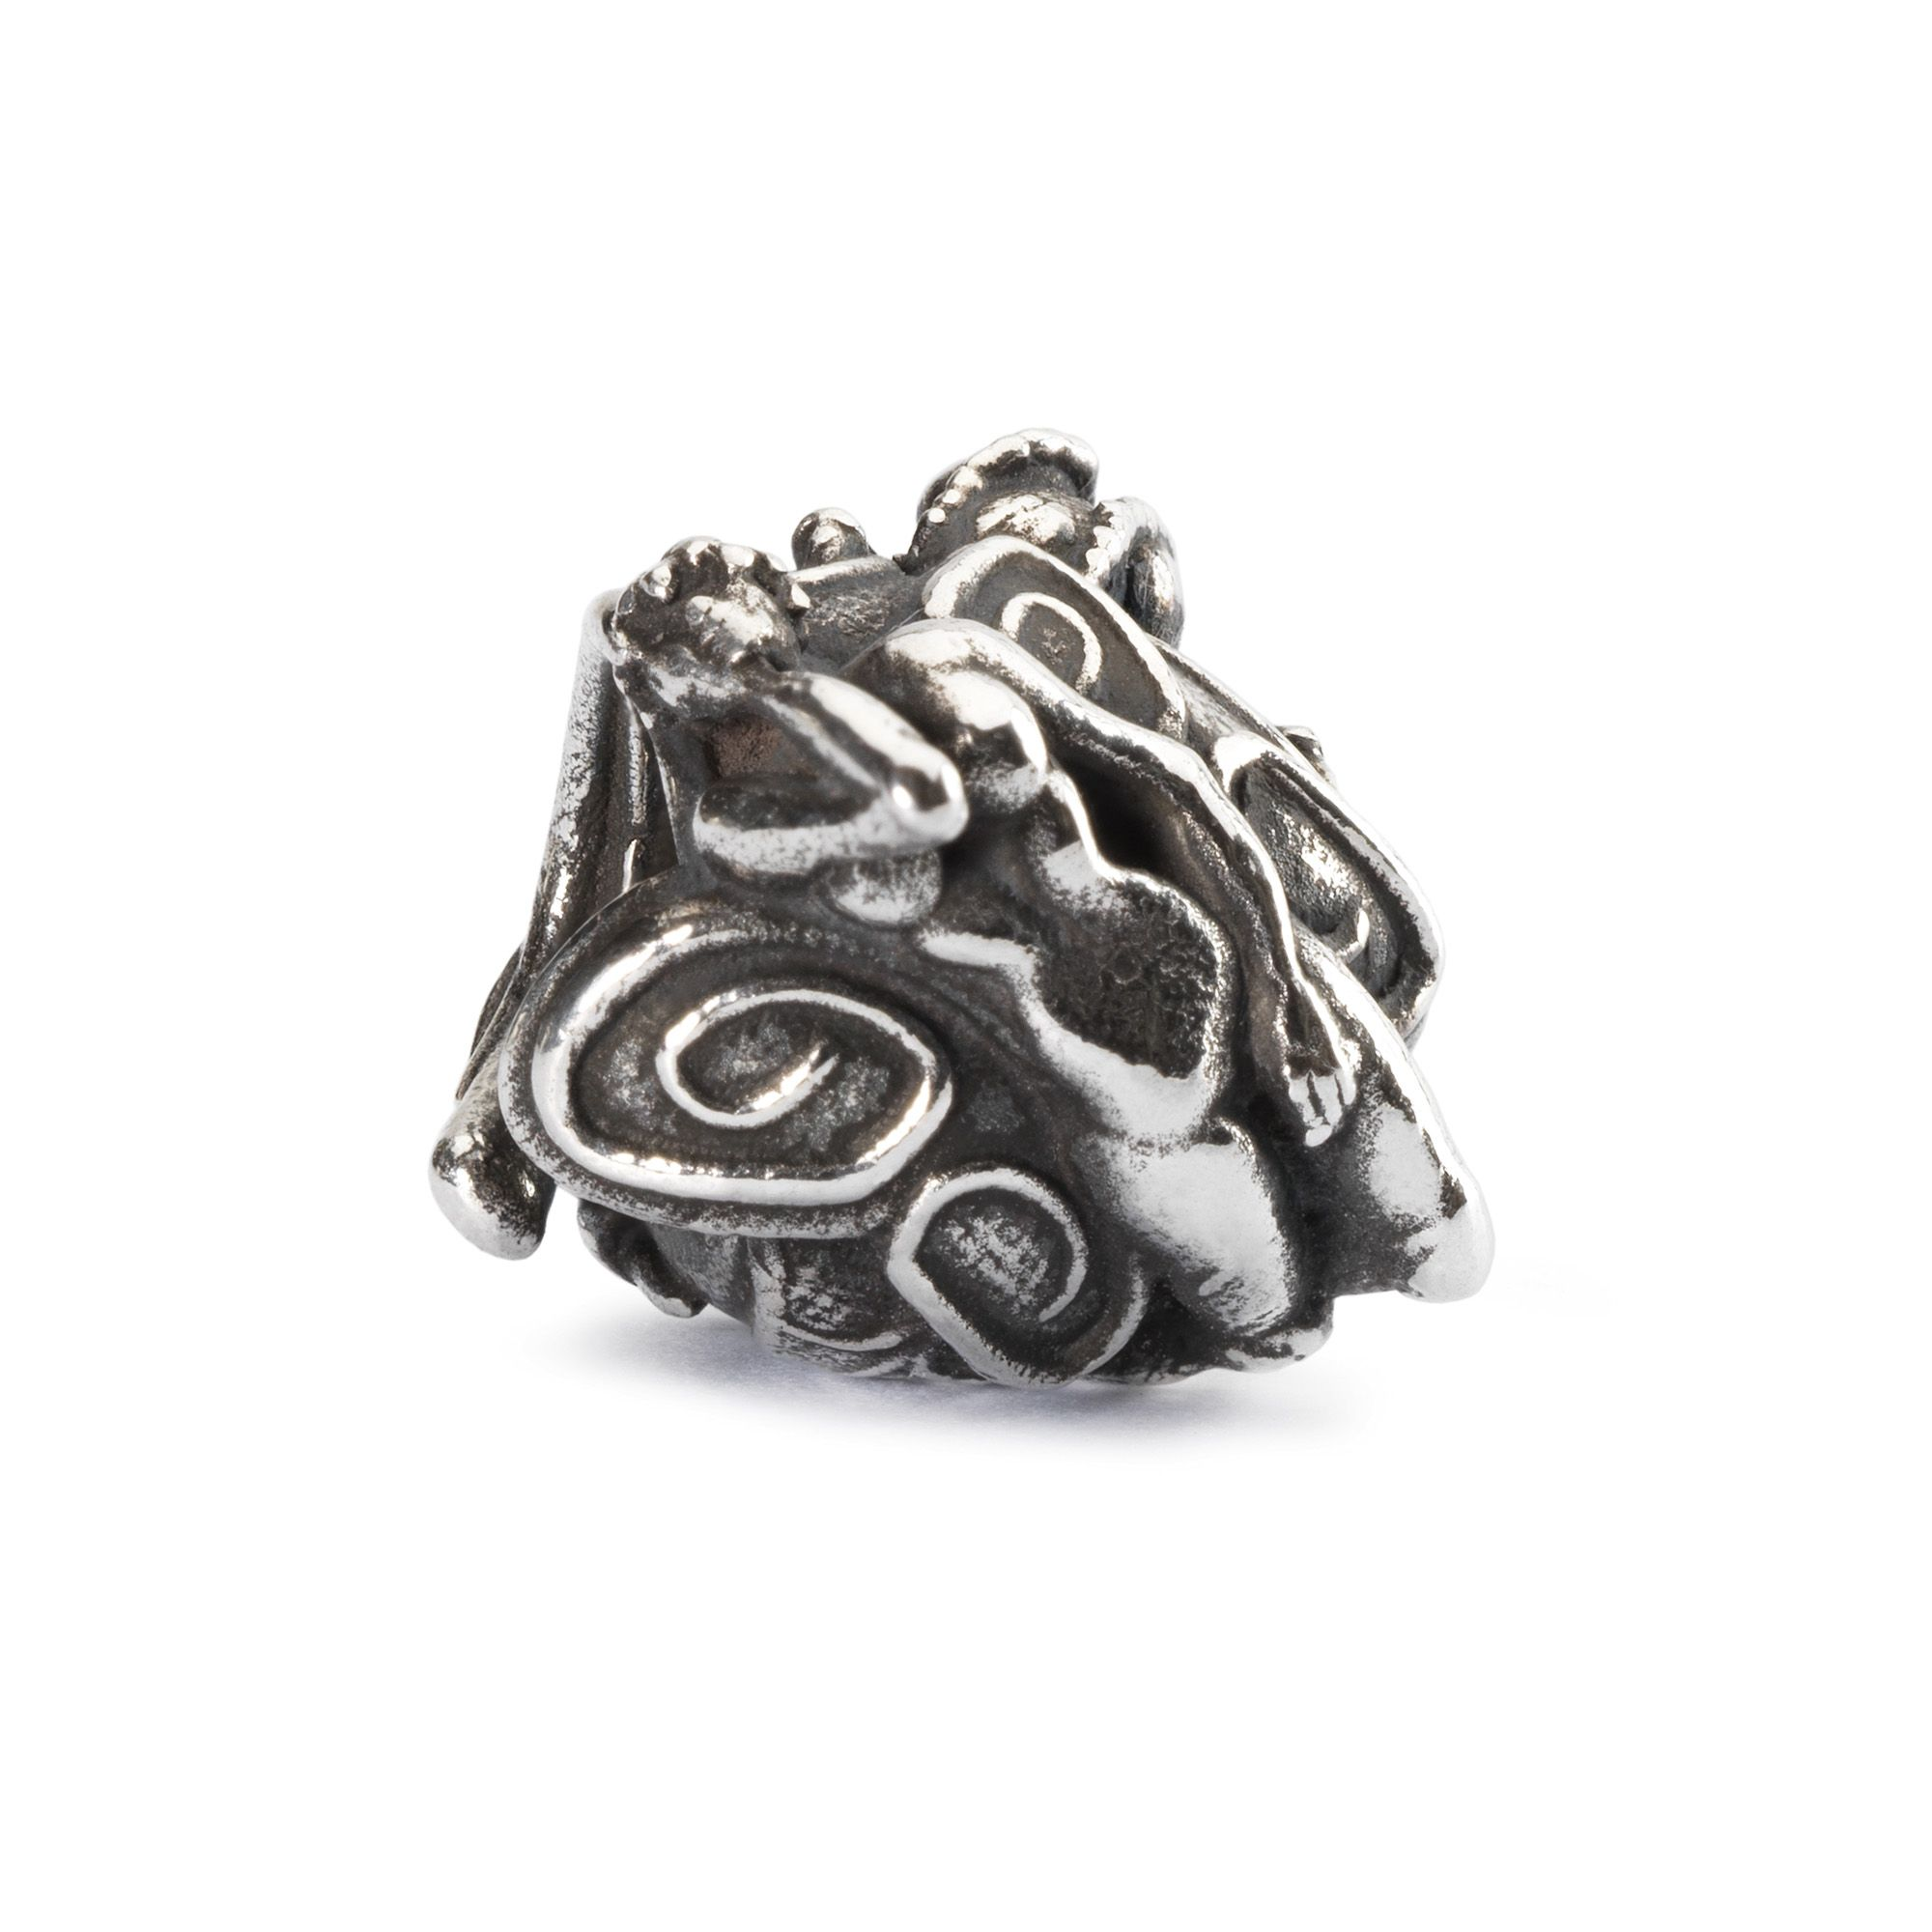 Babylonian nymph sterling silver charm bead